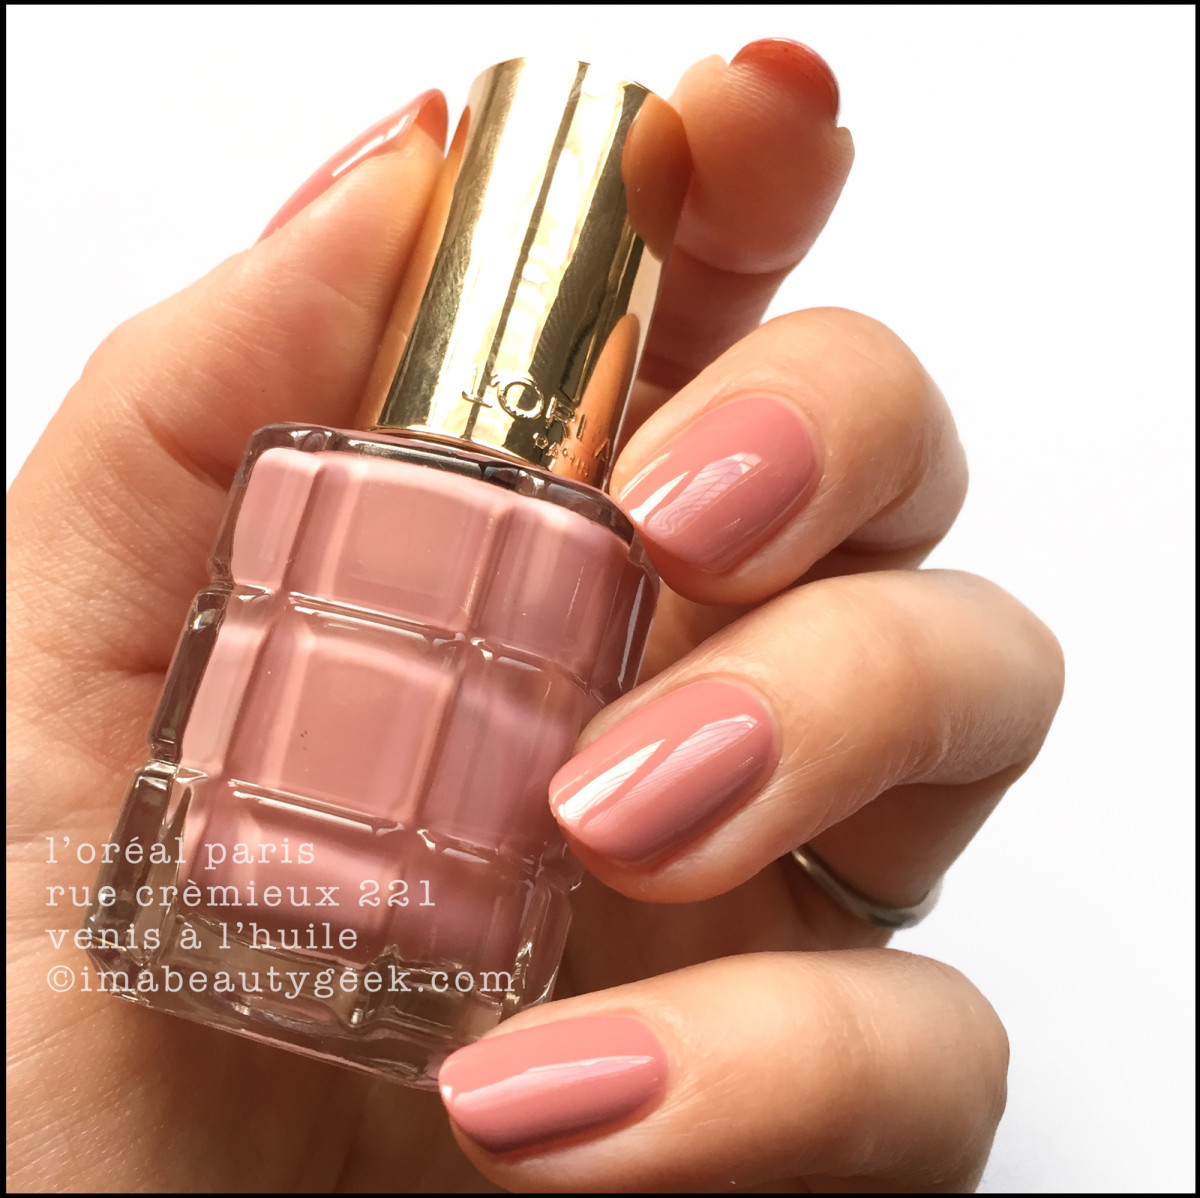 L'Oreal Rue Cremieux Vernis a l'Huile Swatches